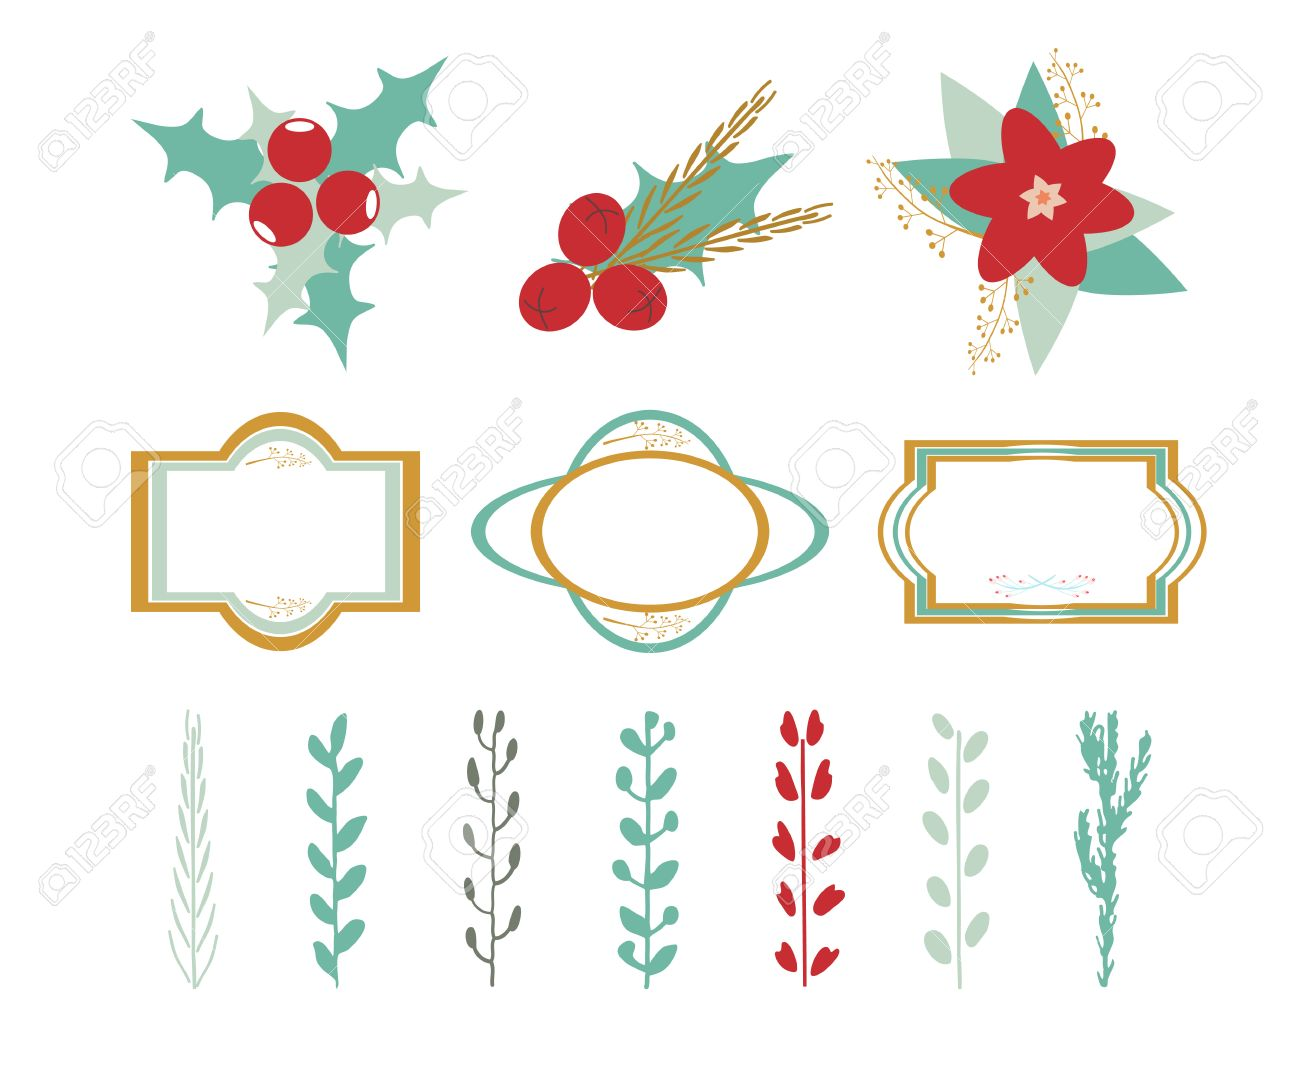 Christmas Decor Elements: Branches, Leaves, Flowers, Frames ...